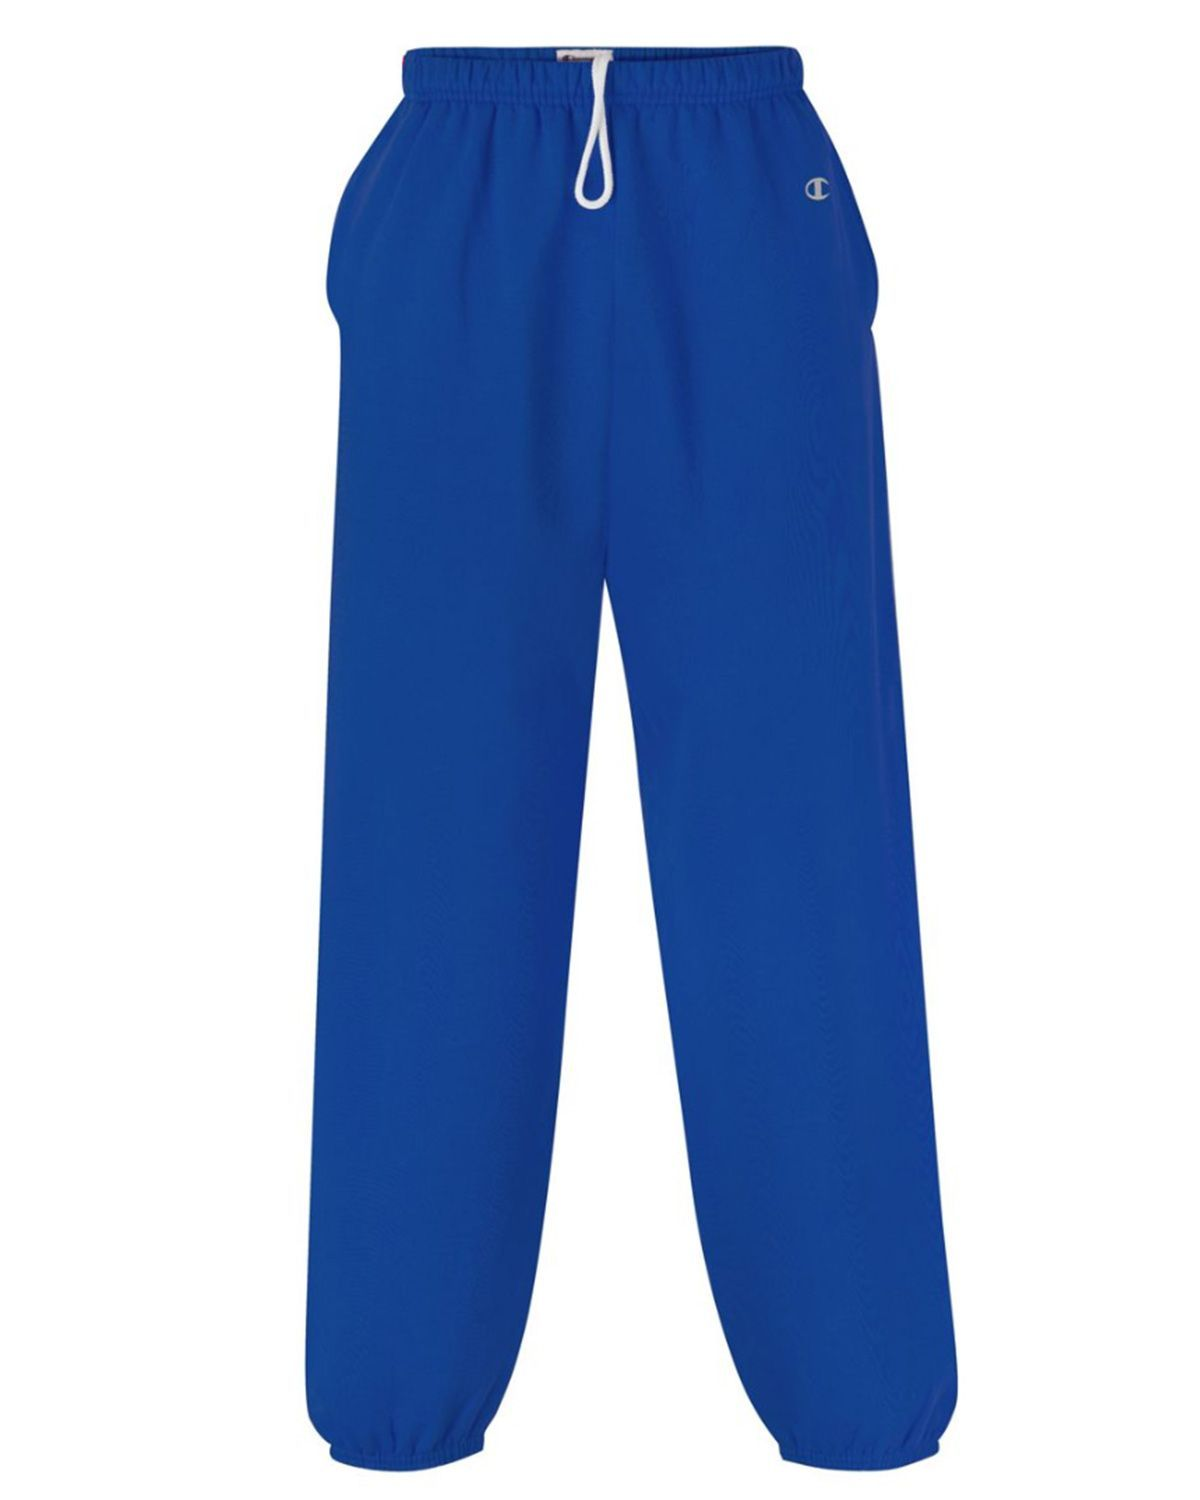 Champion - Cotton Max Pant - P210